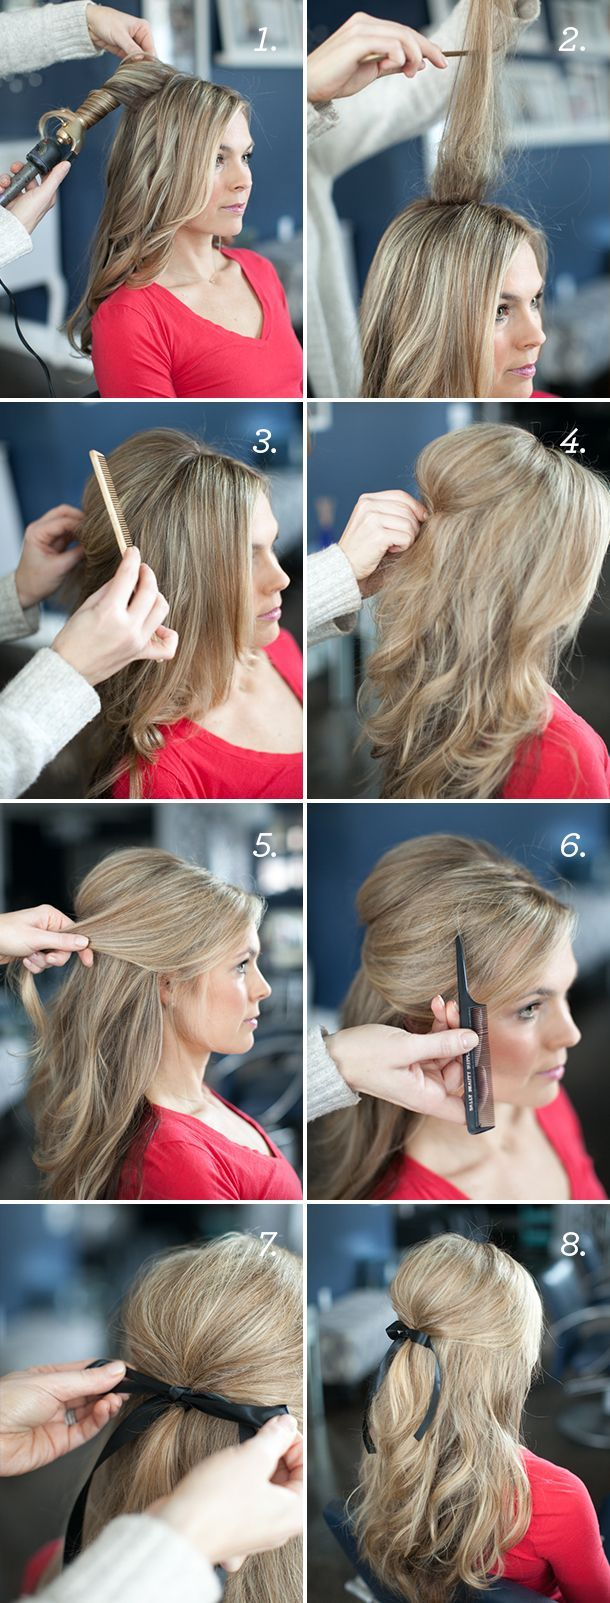 Cute and Stylish Hairstyles for Prom and Wedding ceremony | Beauty